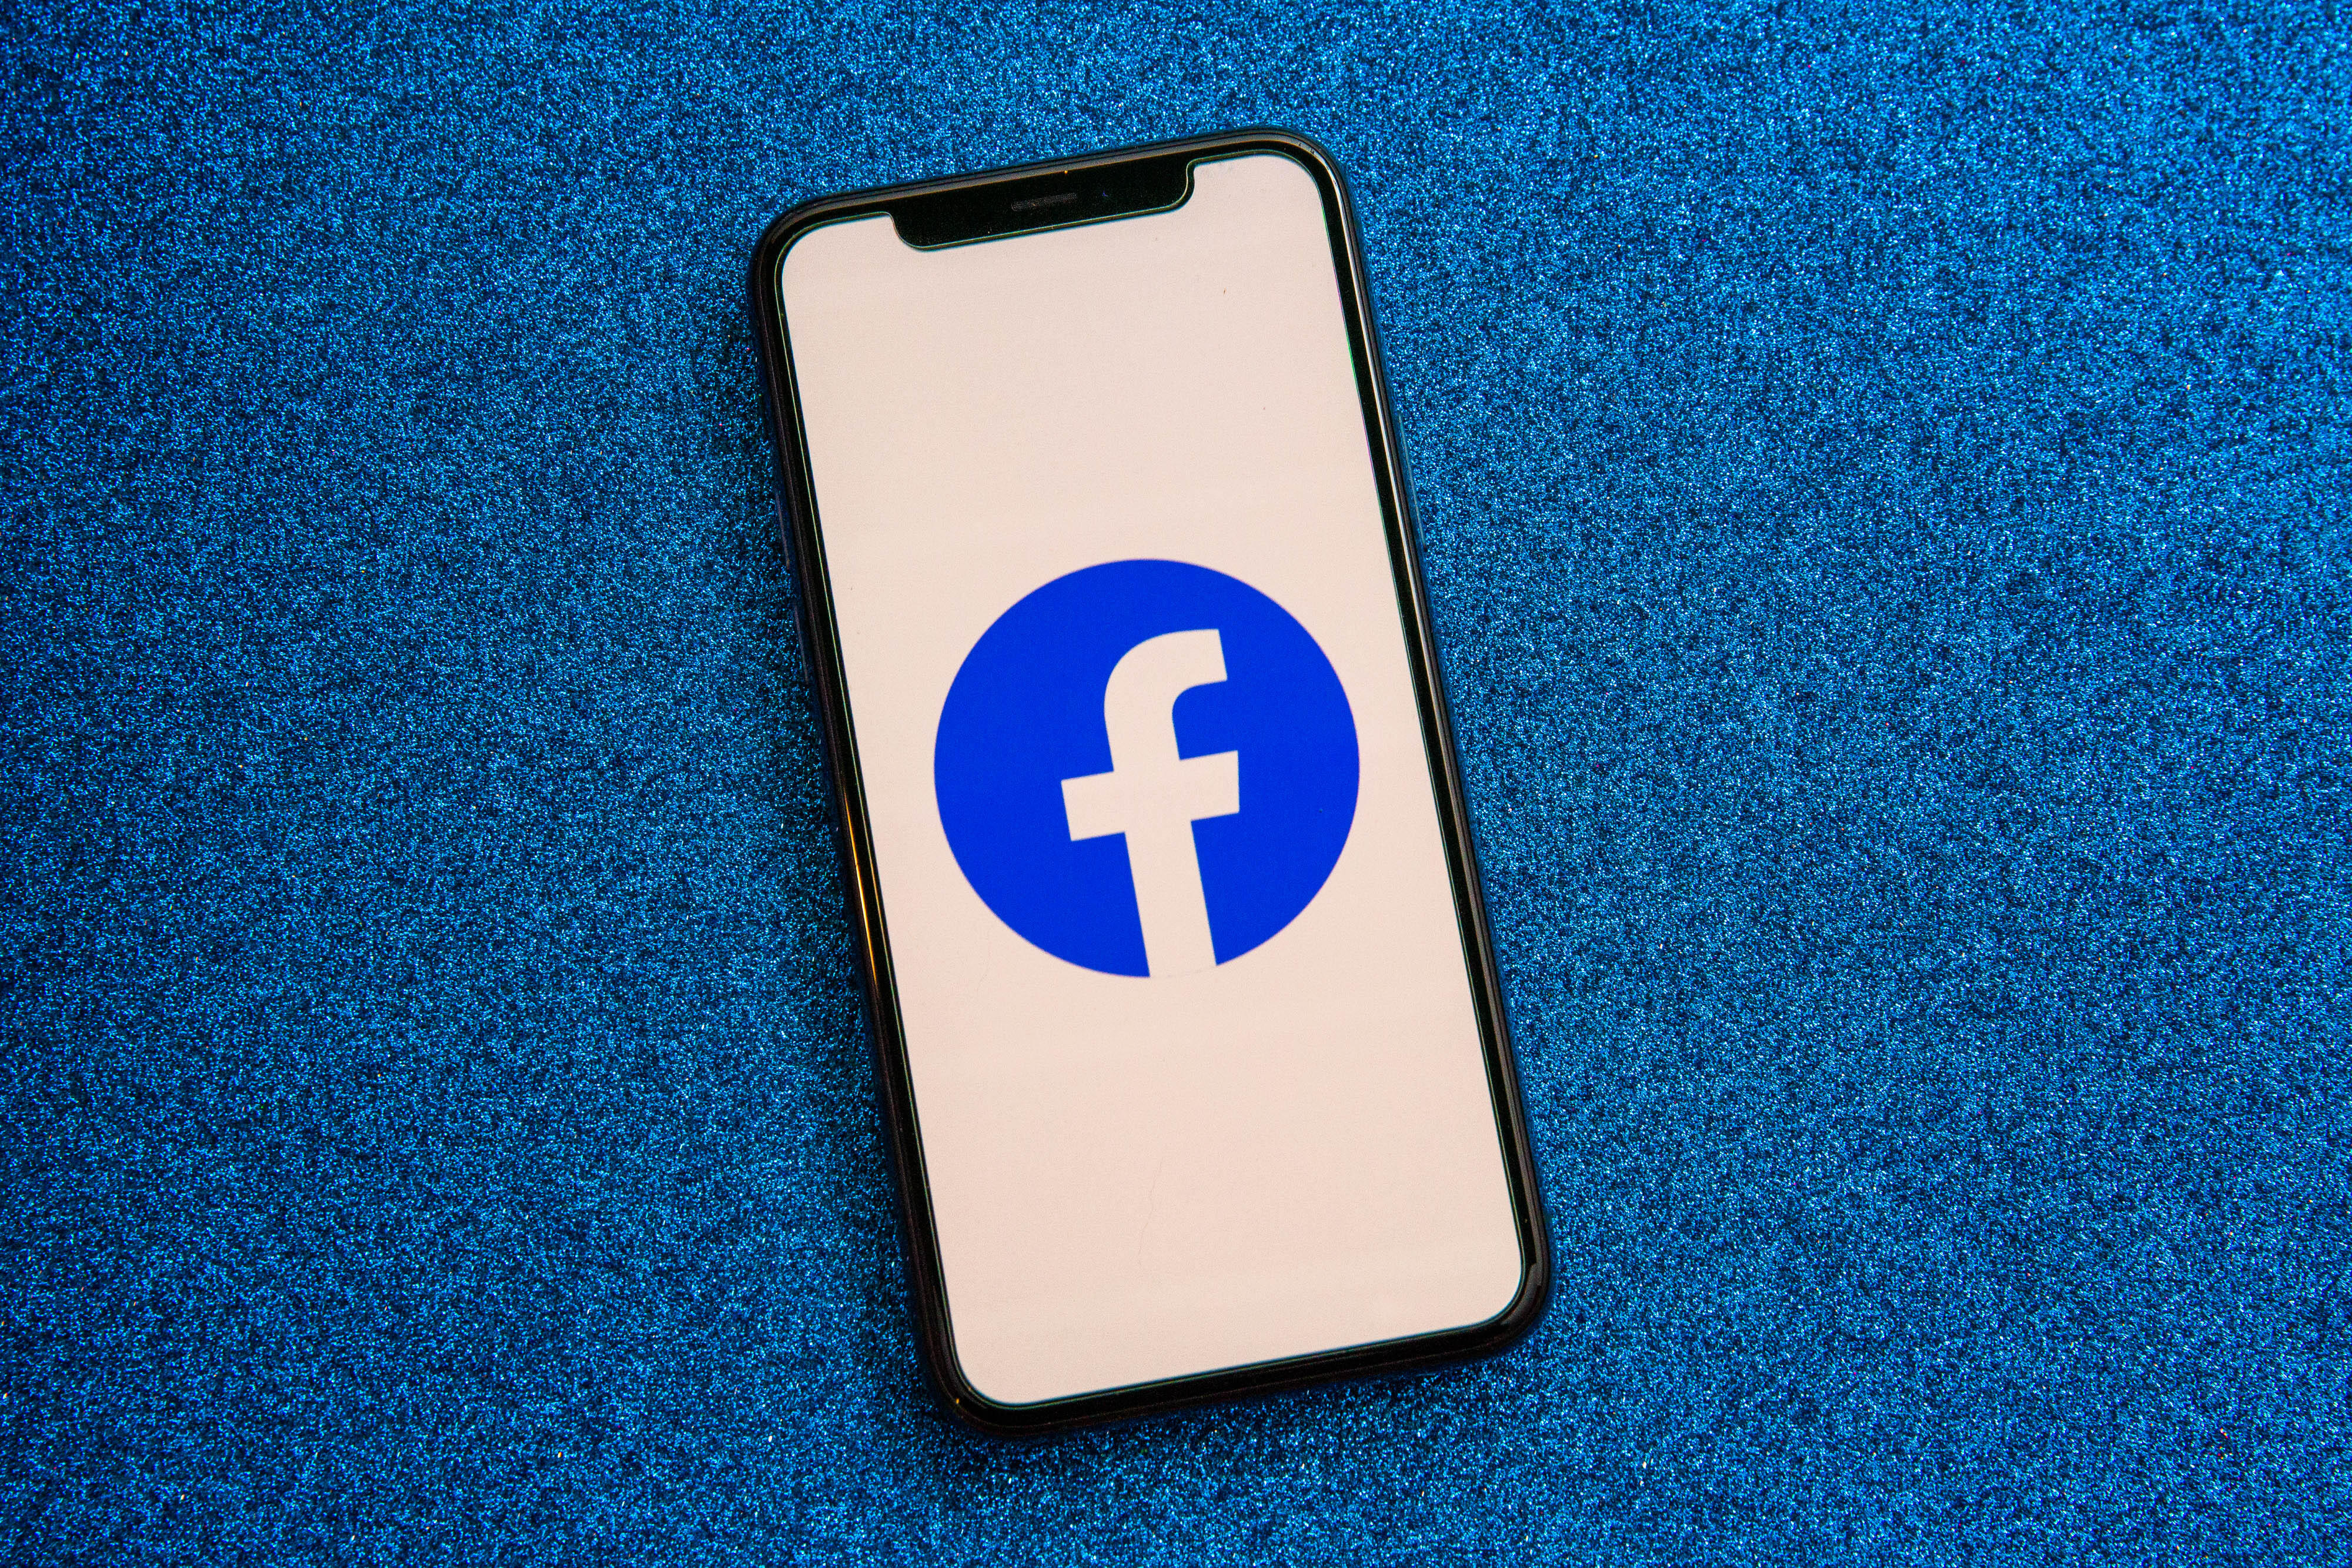 001-facebook-app-logo-on-phone-2021